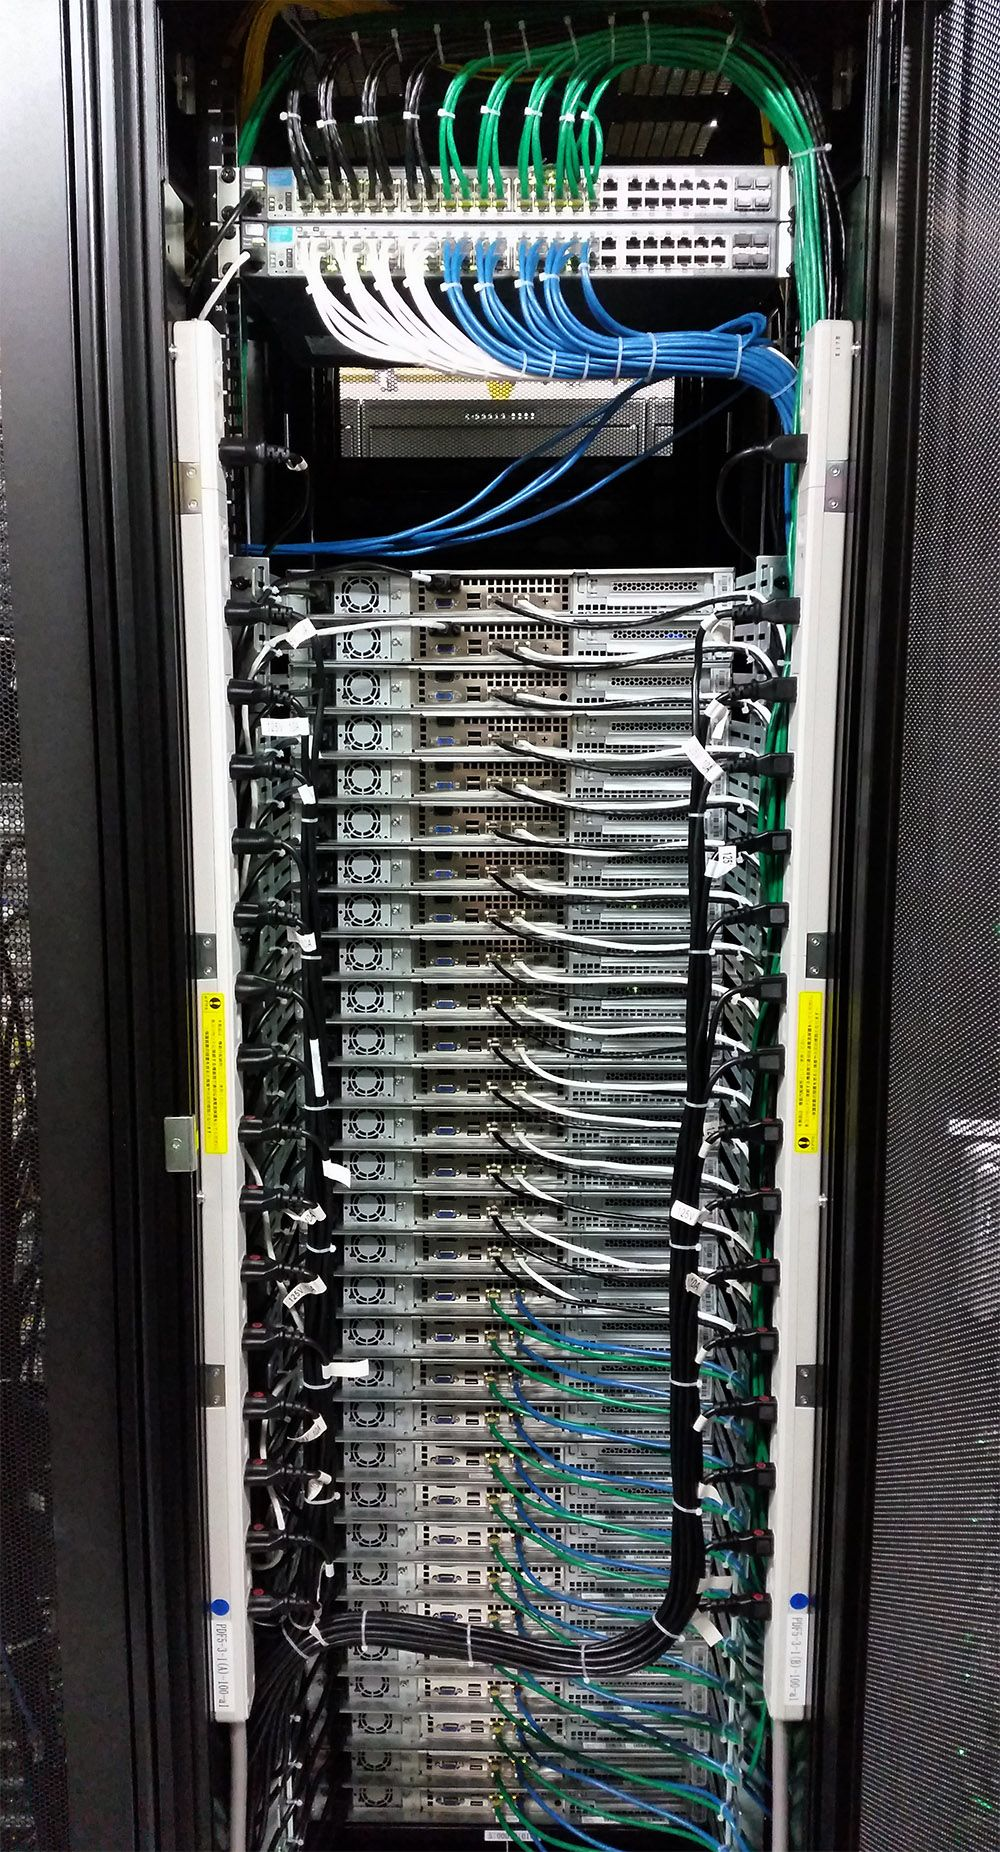 hight resolution of crazy server rack neatly done